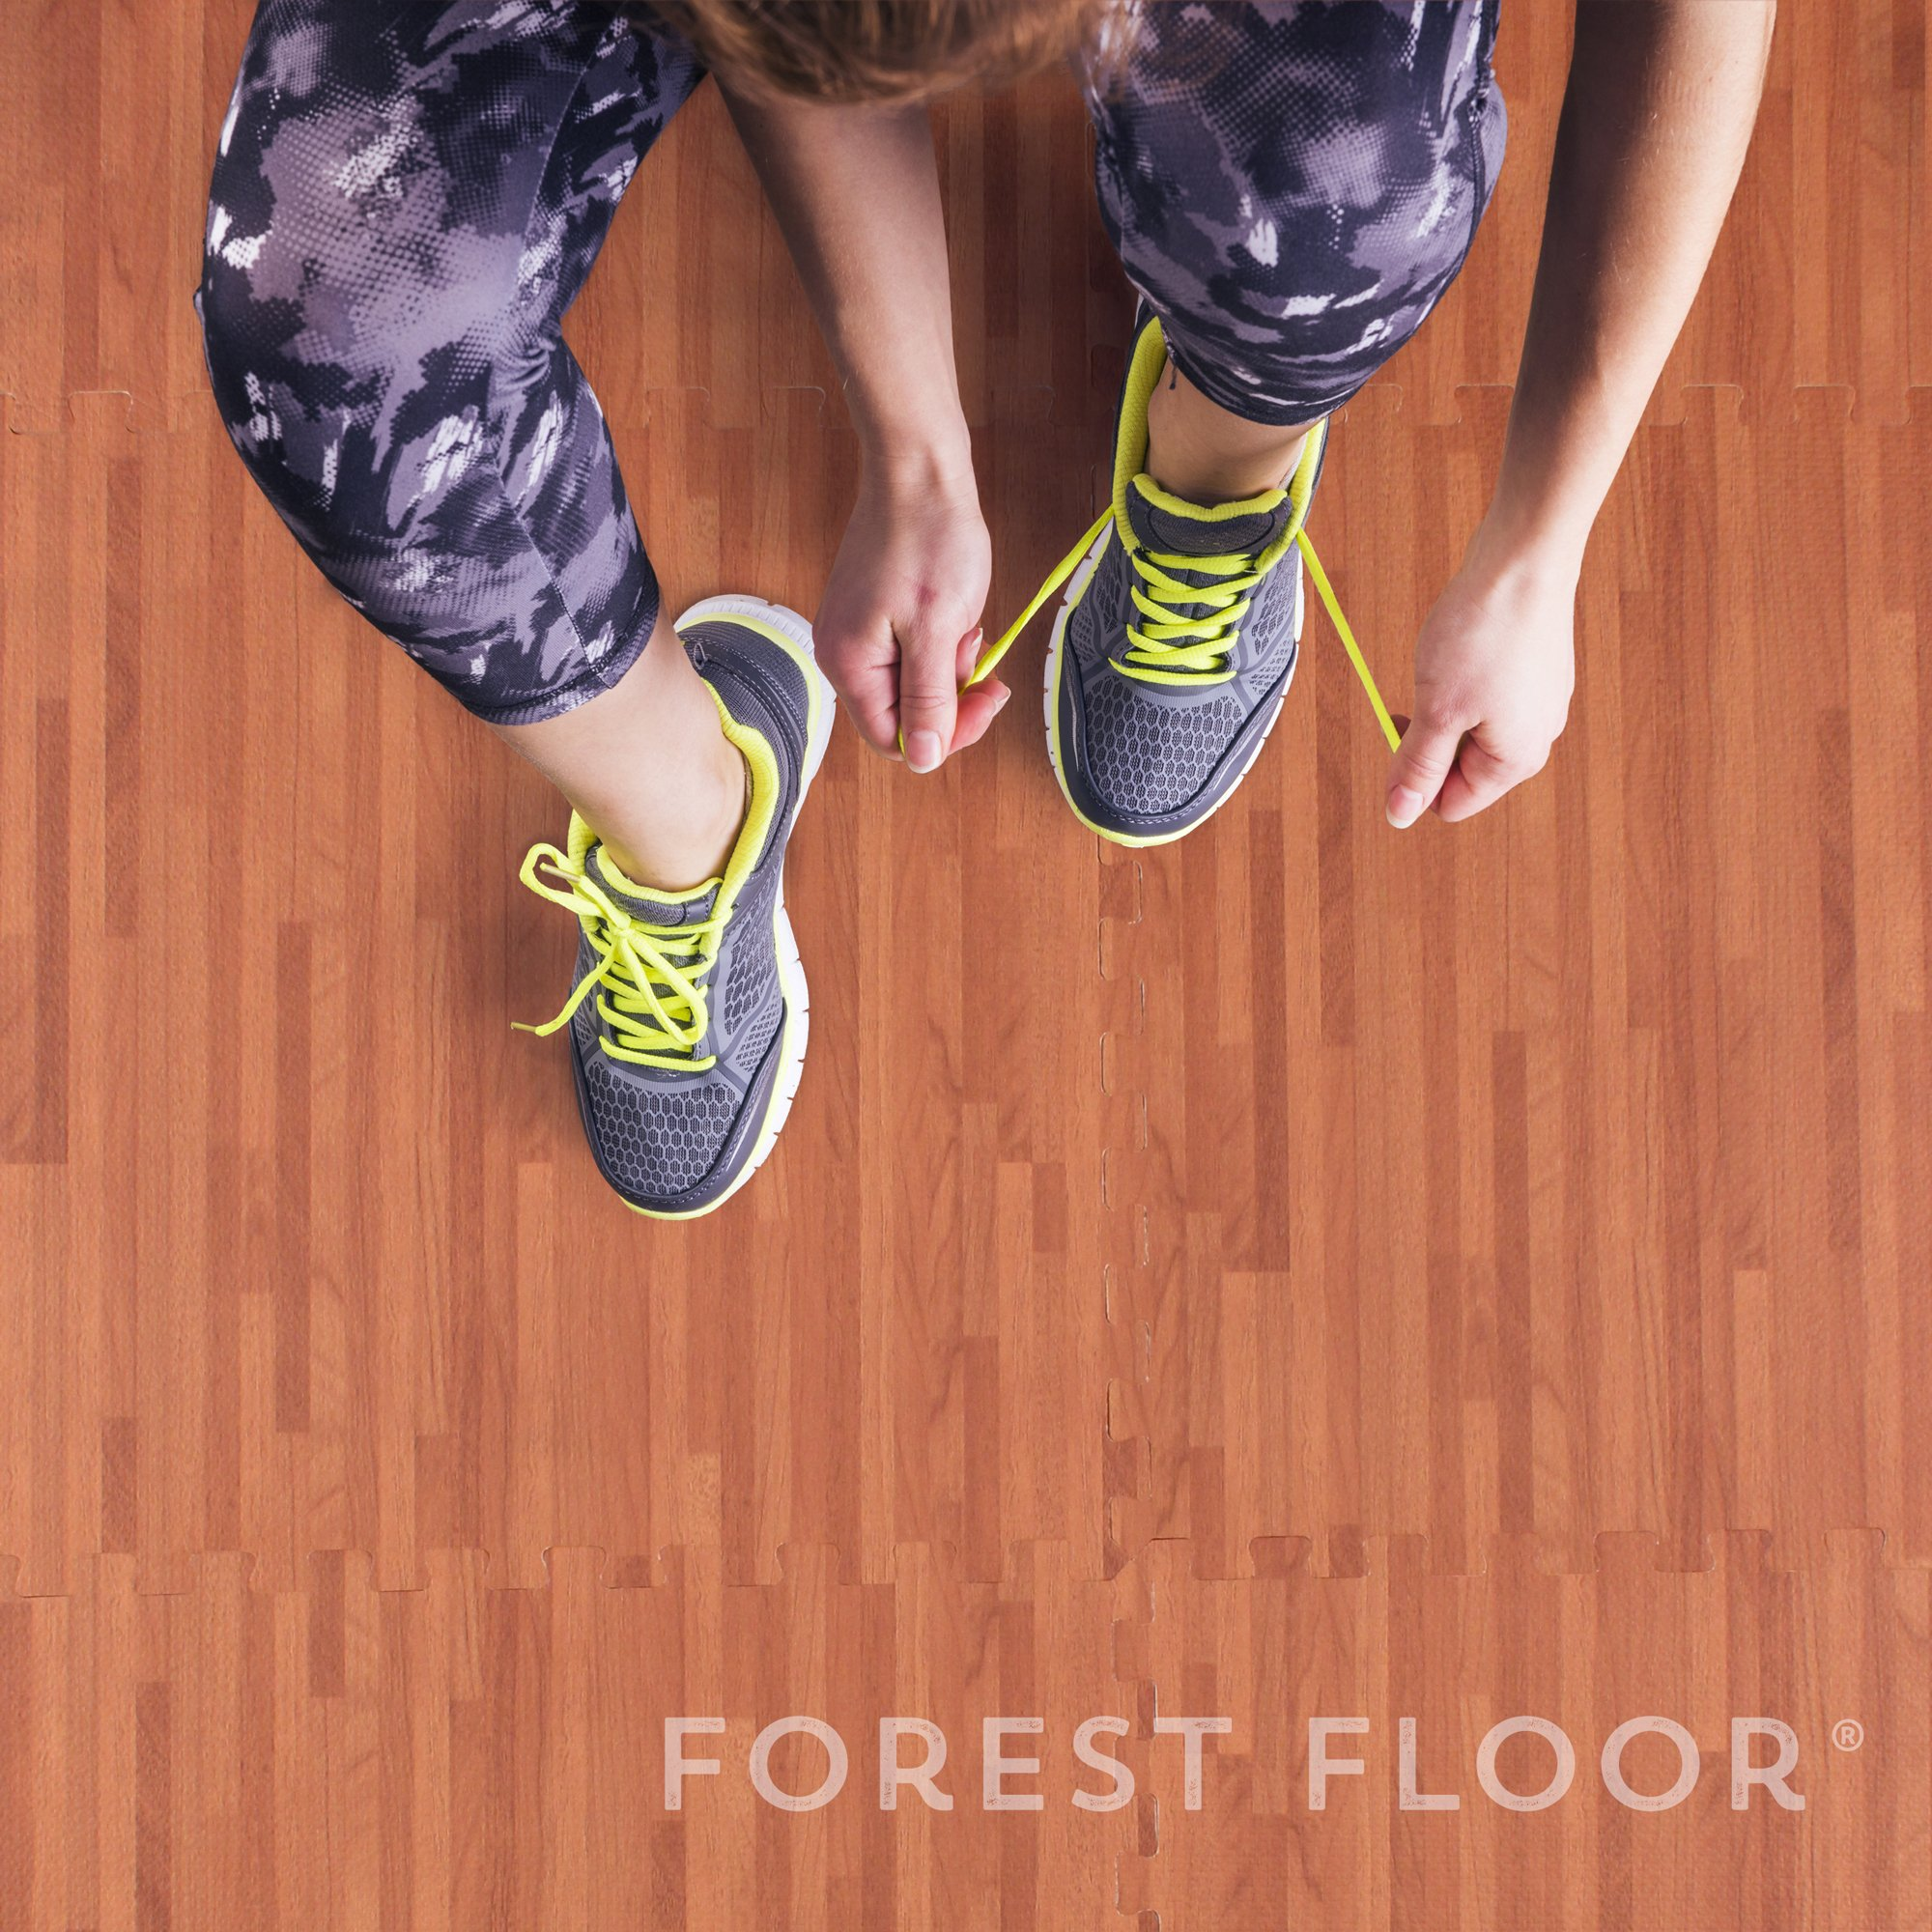 Forest Floor 3/8'' Thick Printed Wood Grain Interlocking Foam Floor Mats, 16 Sq Ft (4 Tiles), Mahogany by Forest Floor (Image #6)